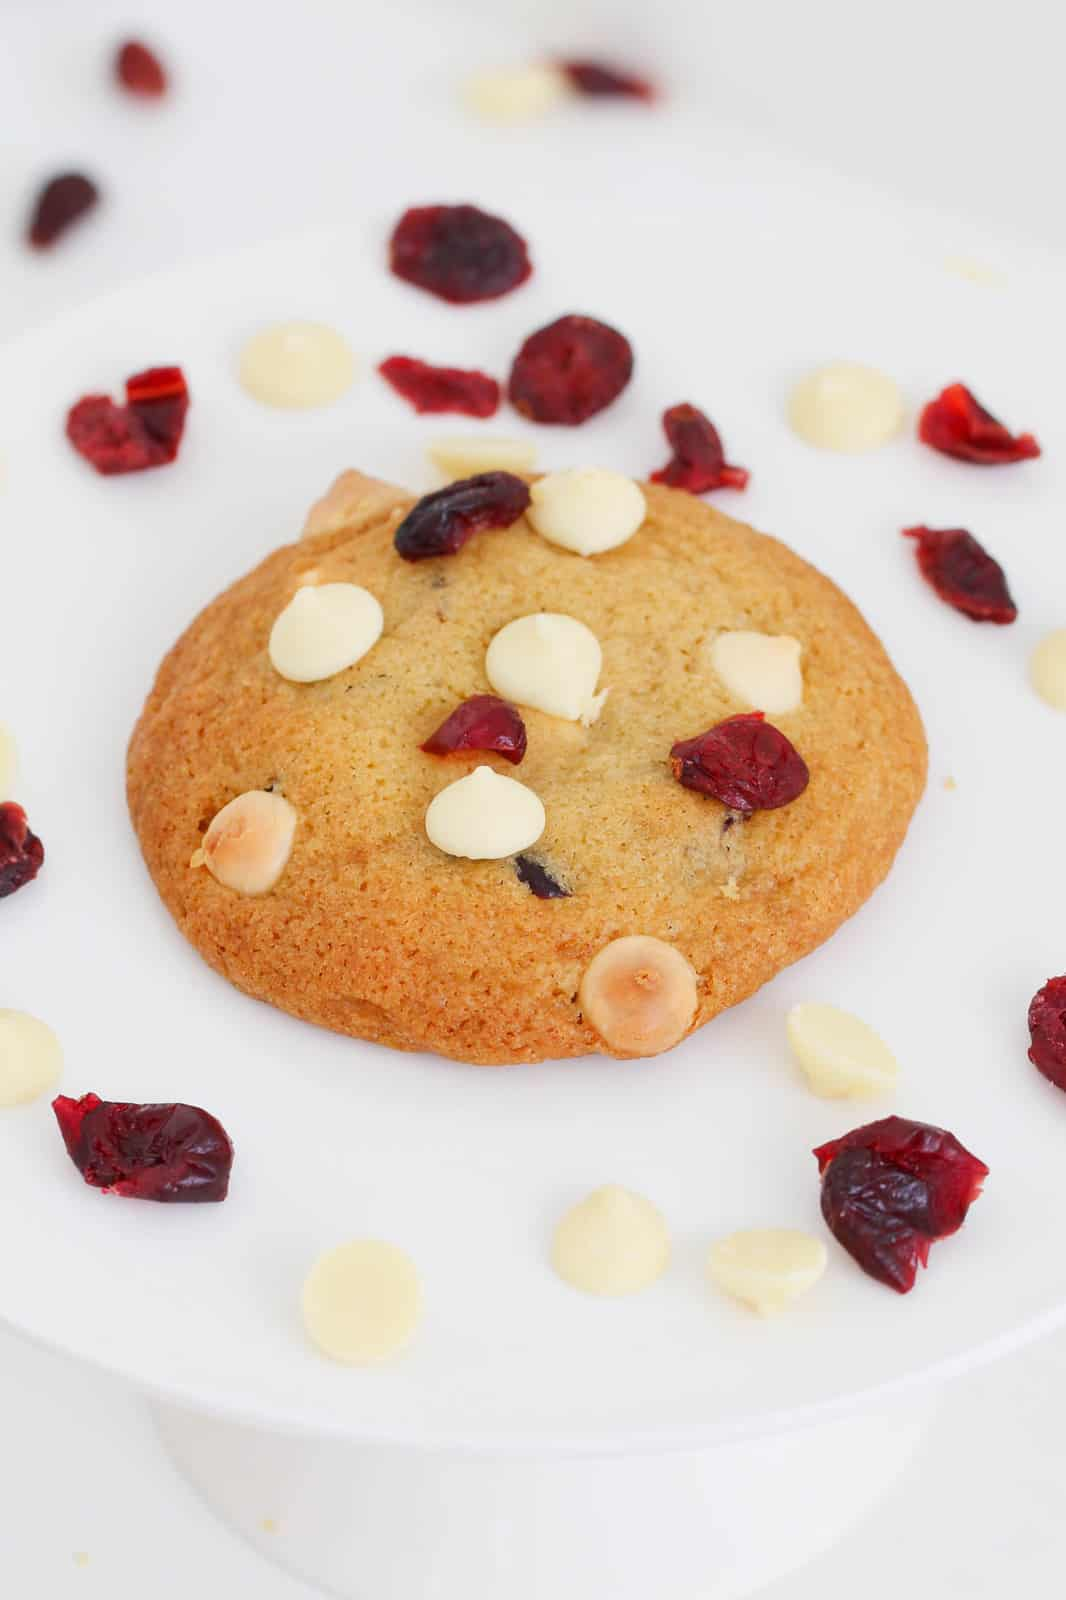 A cookie topped with white chocolate and cranberries, and more cranberries scattered around, on a white plate.